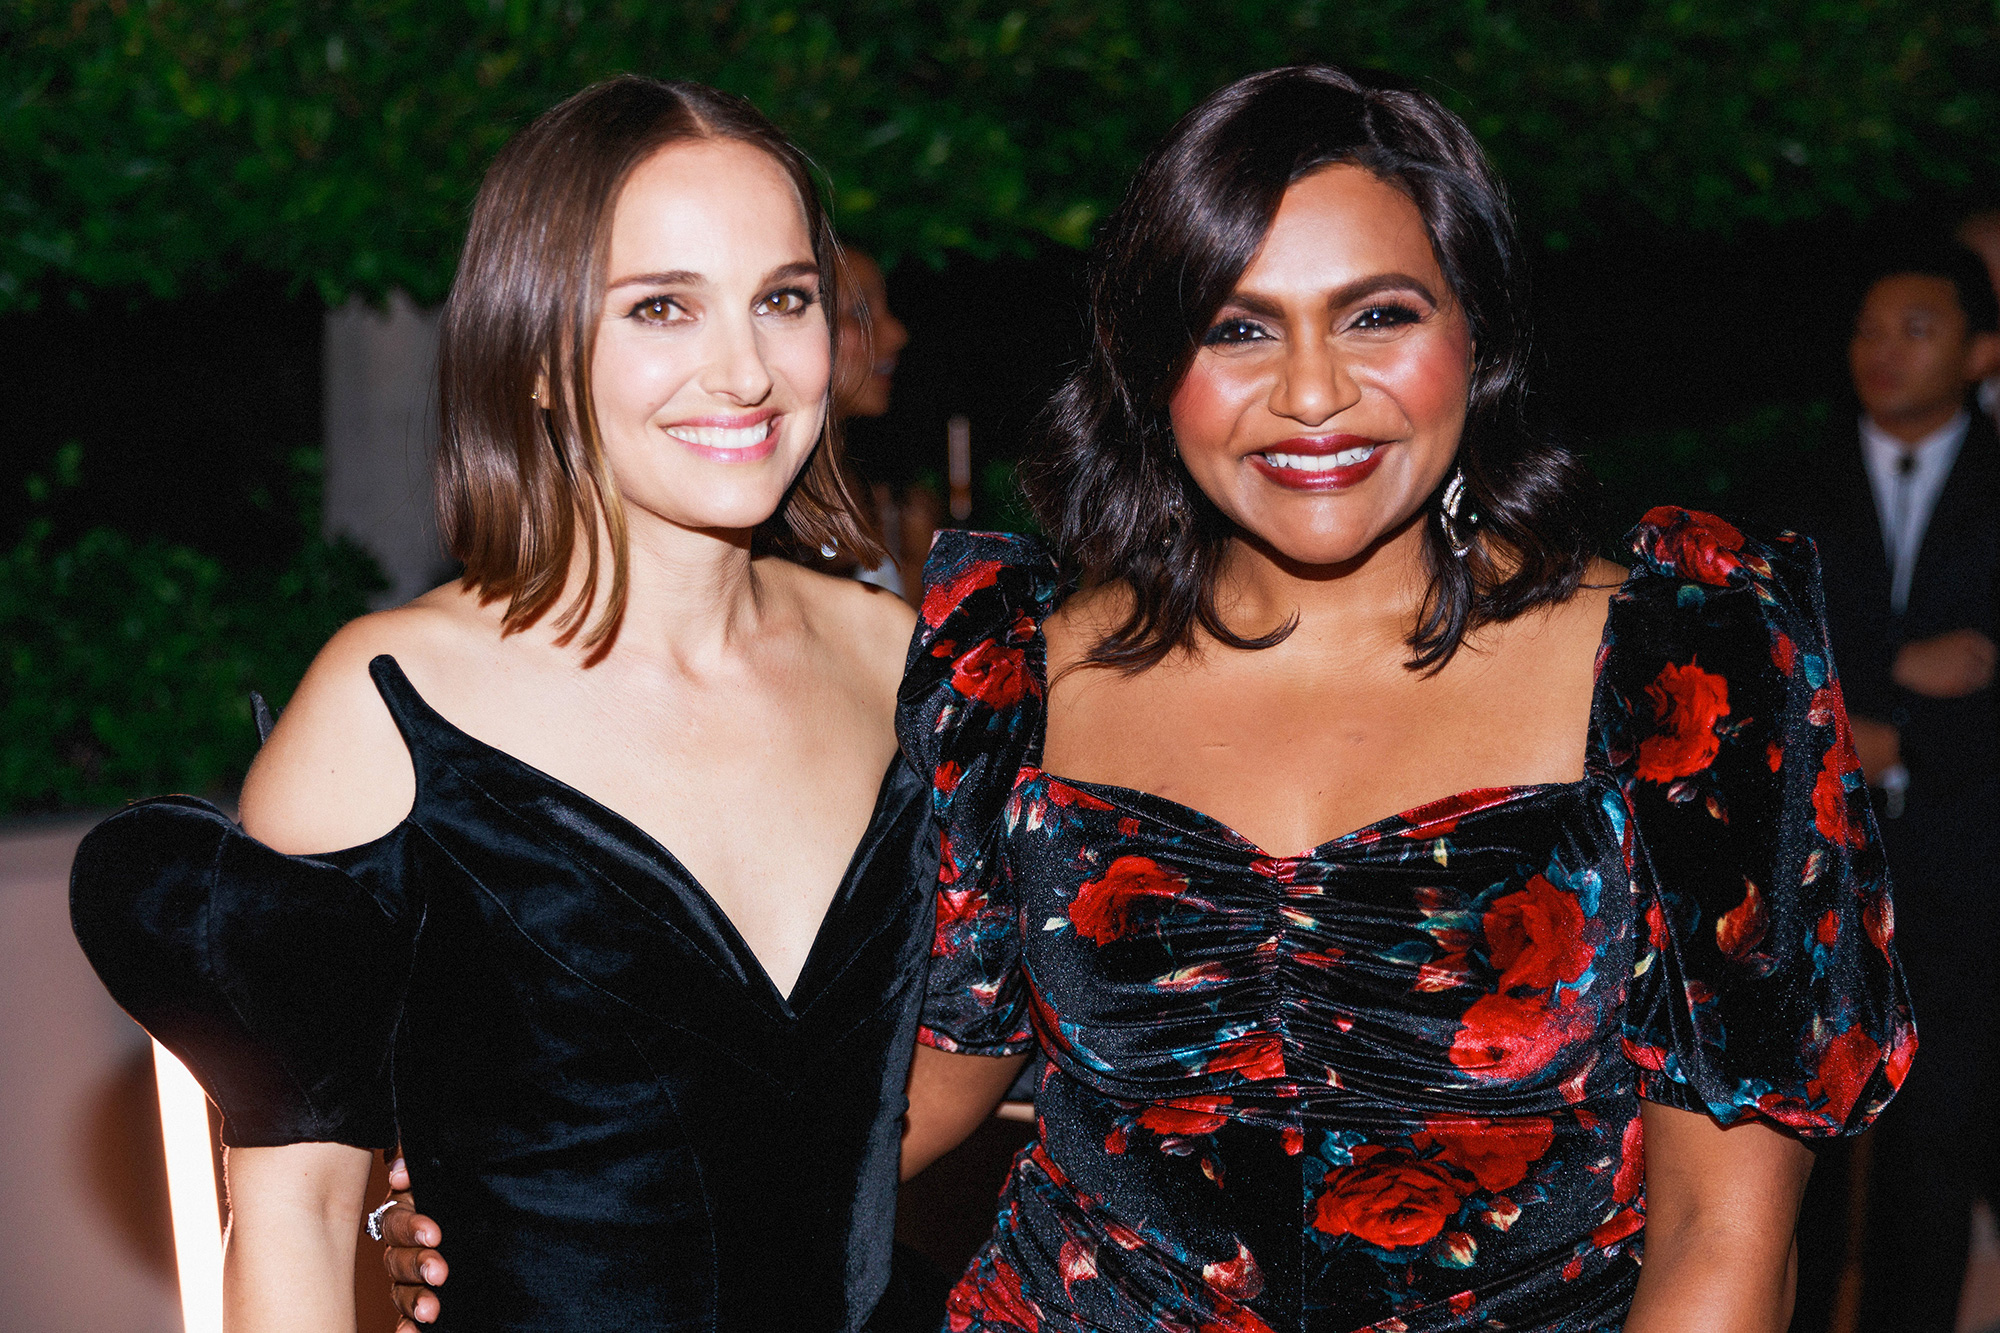 Natalie Portman and Mindy Kaling attend the L.A. Dance Project Annual Gala on October 16, 2021